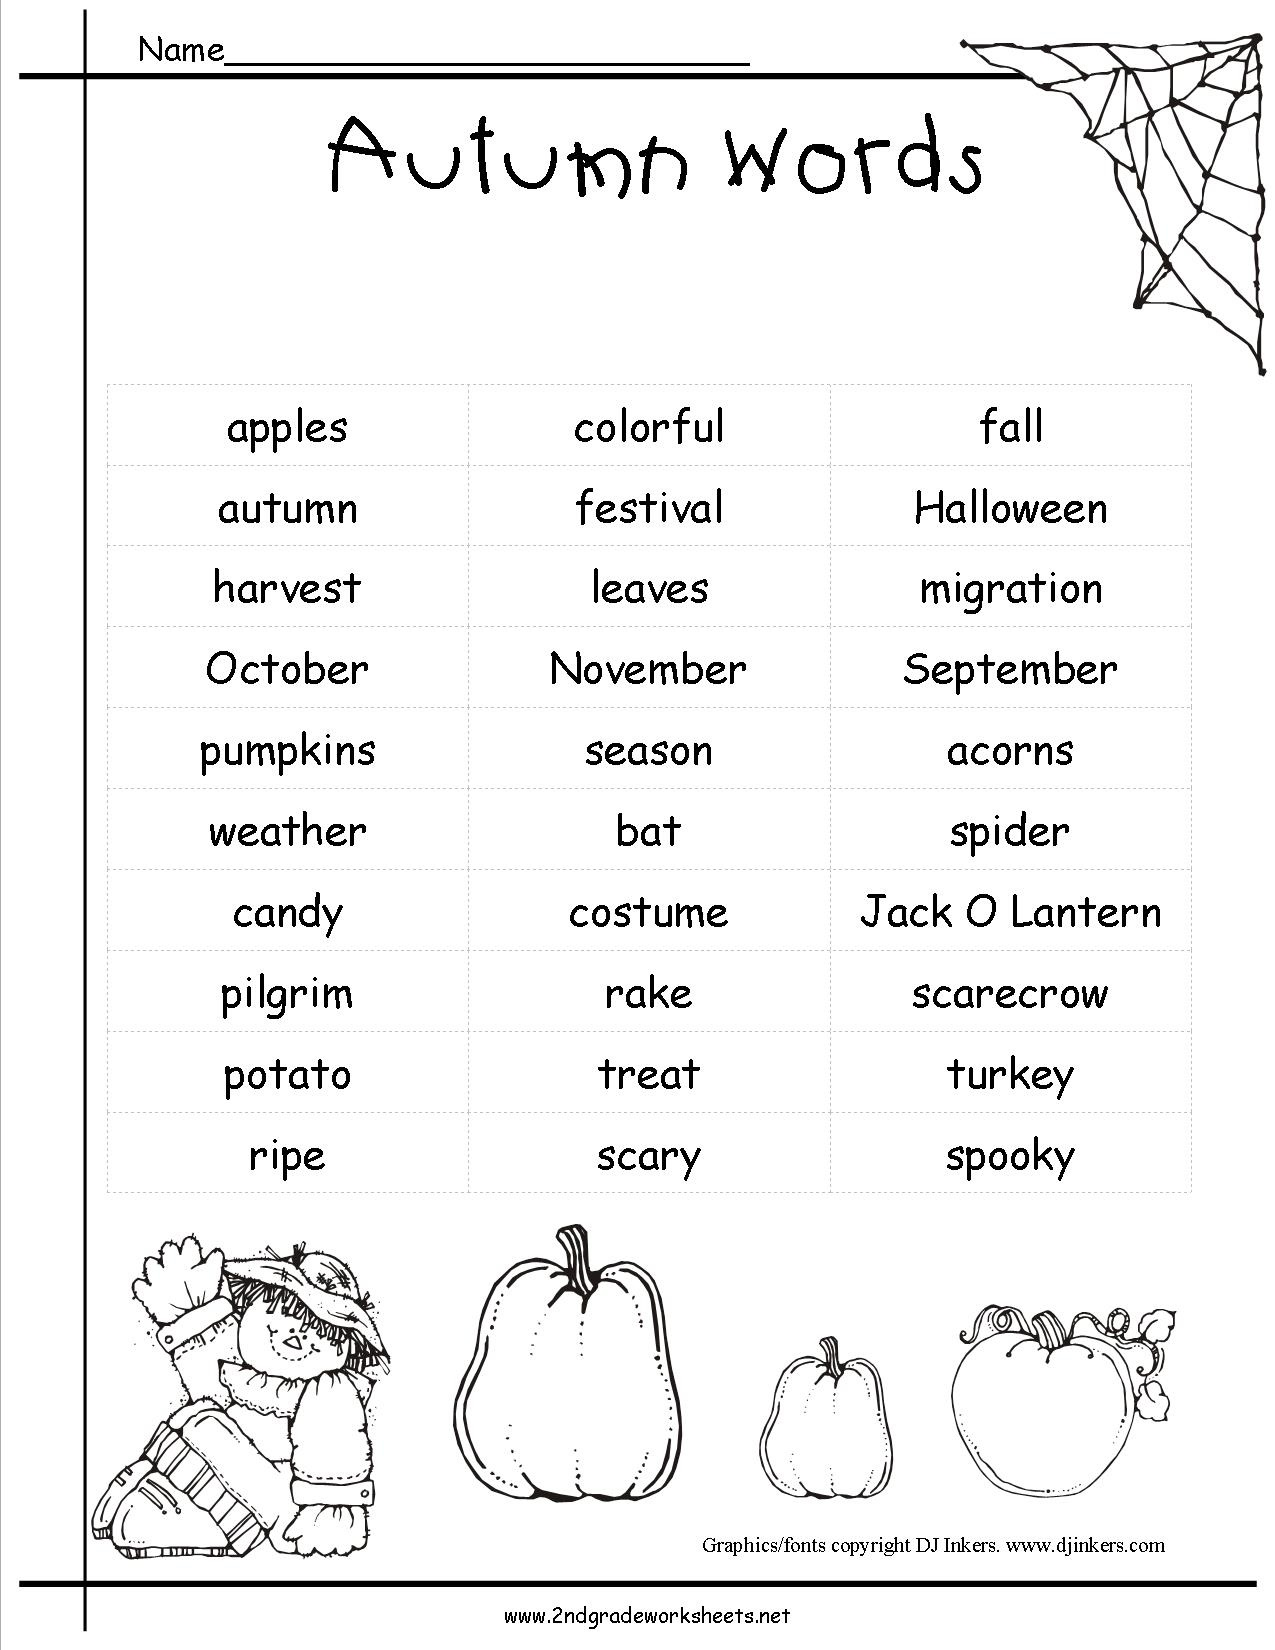 Autumn Theme Worksheets And Printouts. - Free Printable Autumn Worksheets